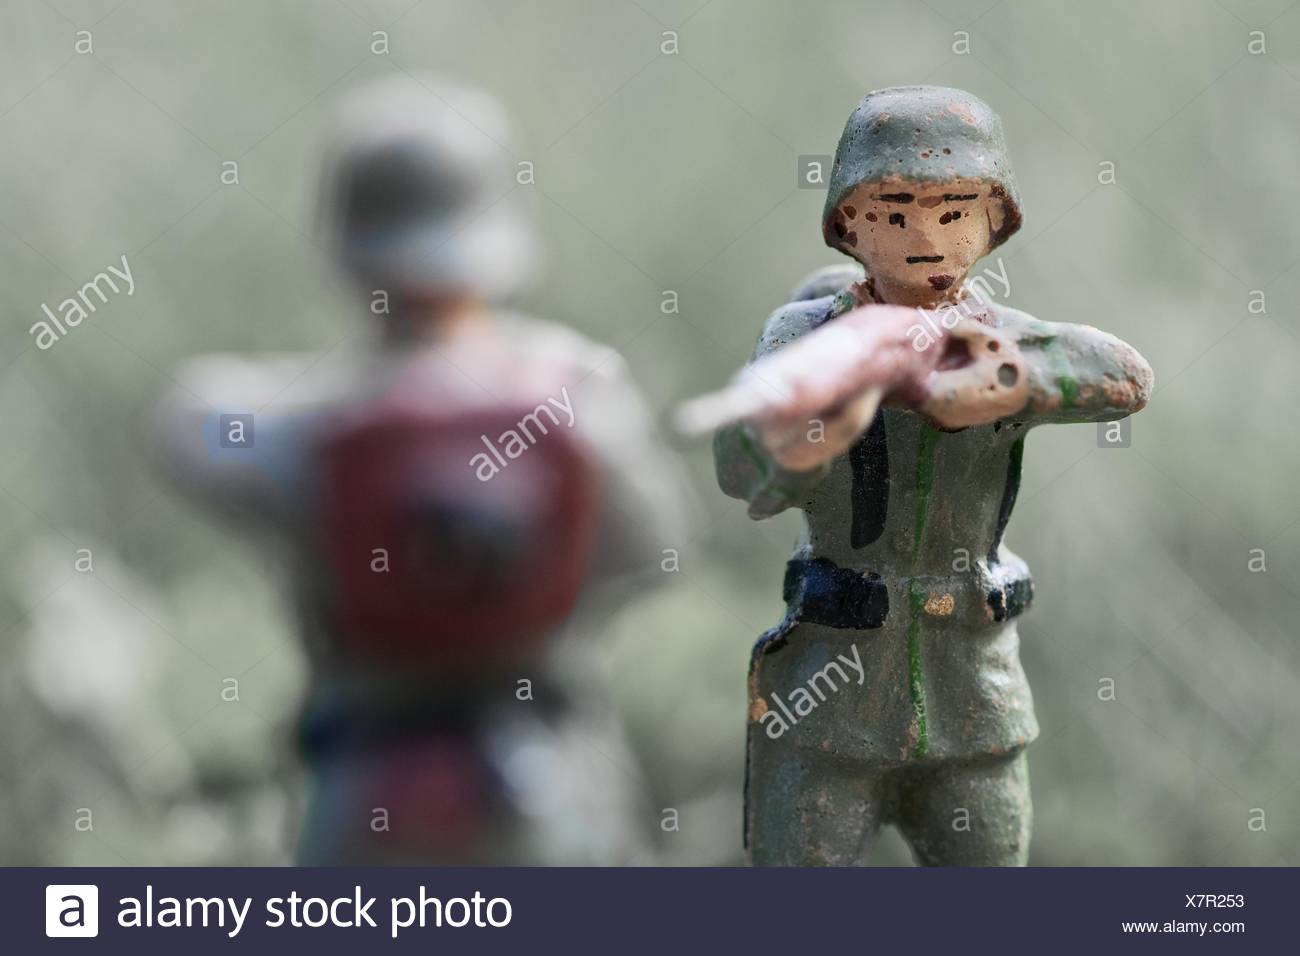 Old Toy Soldiers Banque D'Images